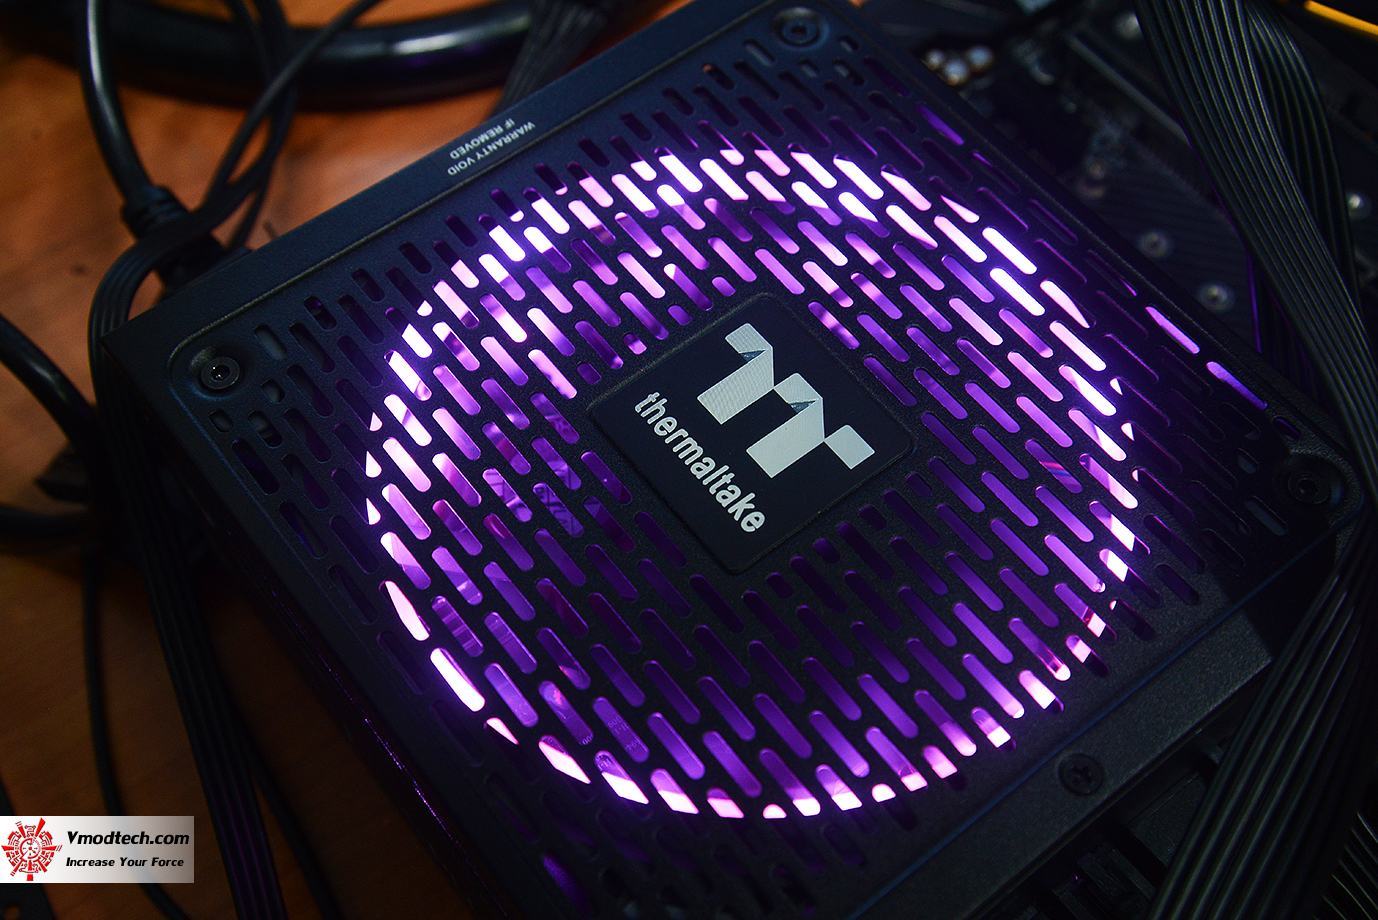 dsc 1942 Thermaltake Toughpower iRGB PLUS 1050W Platinum Review